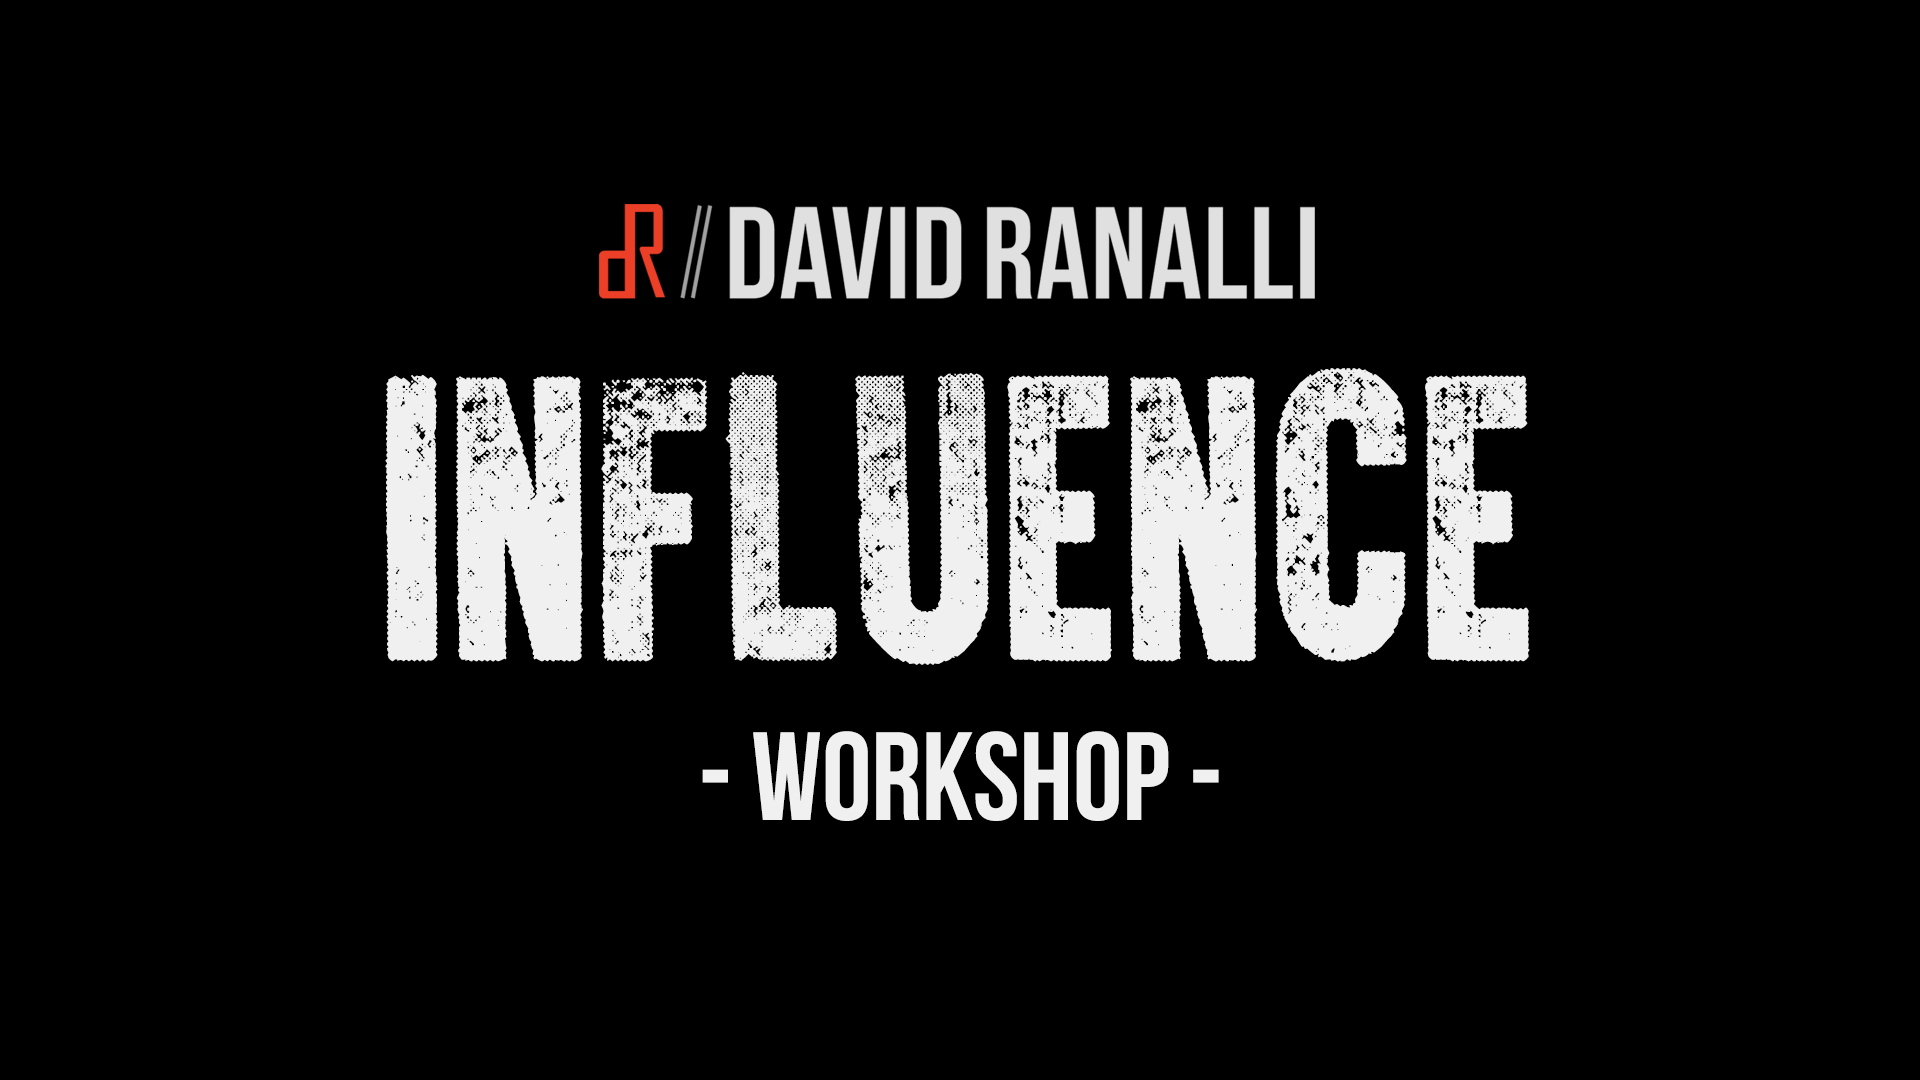 Influence and communication workshop with motivational speaker and magician David Ranalli